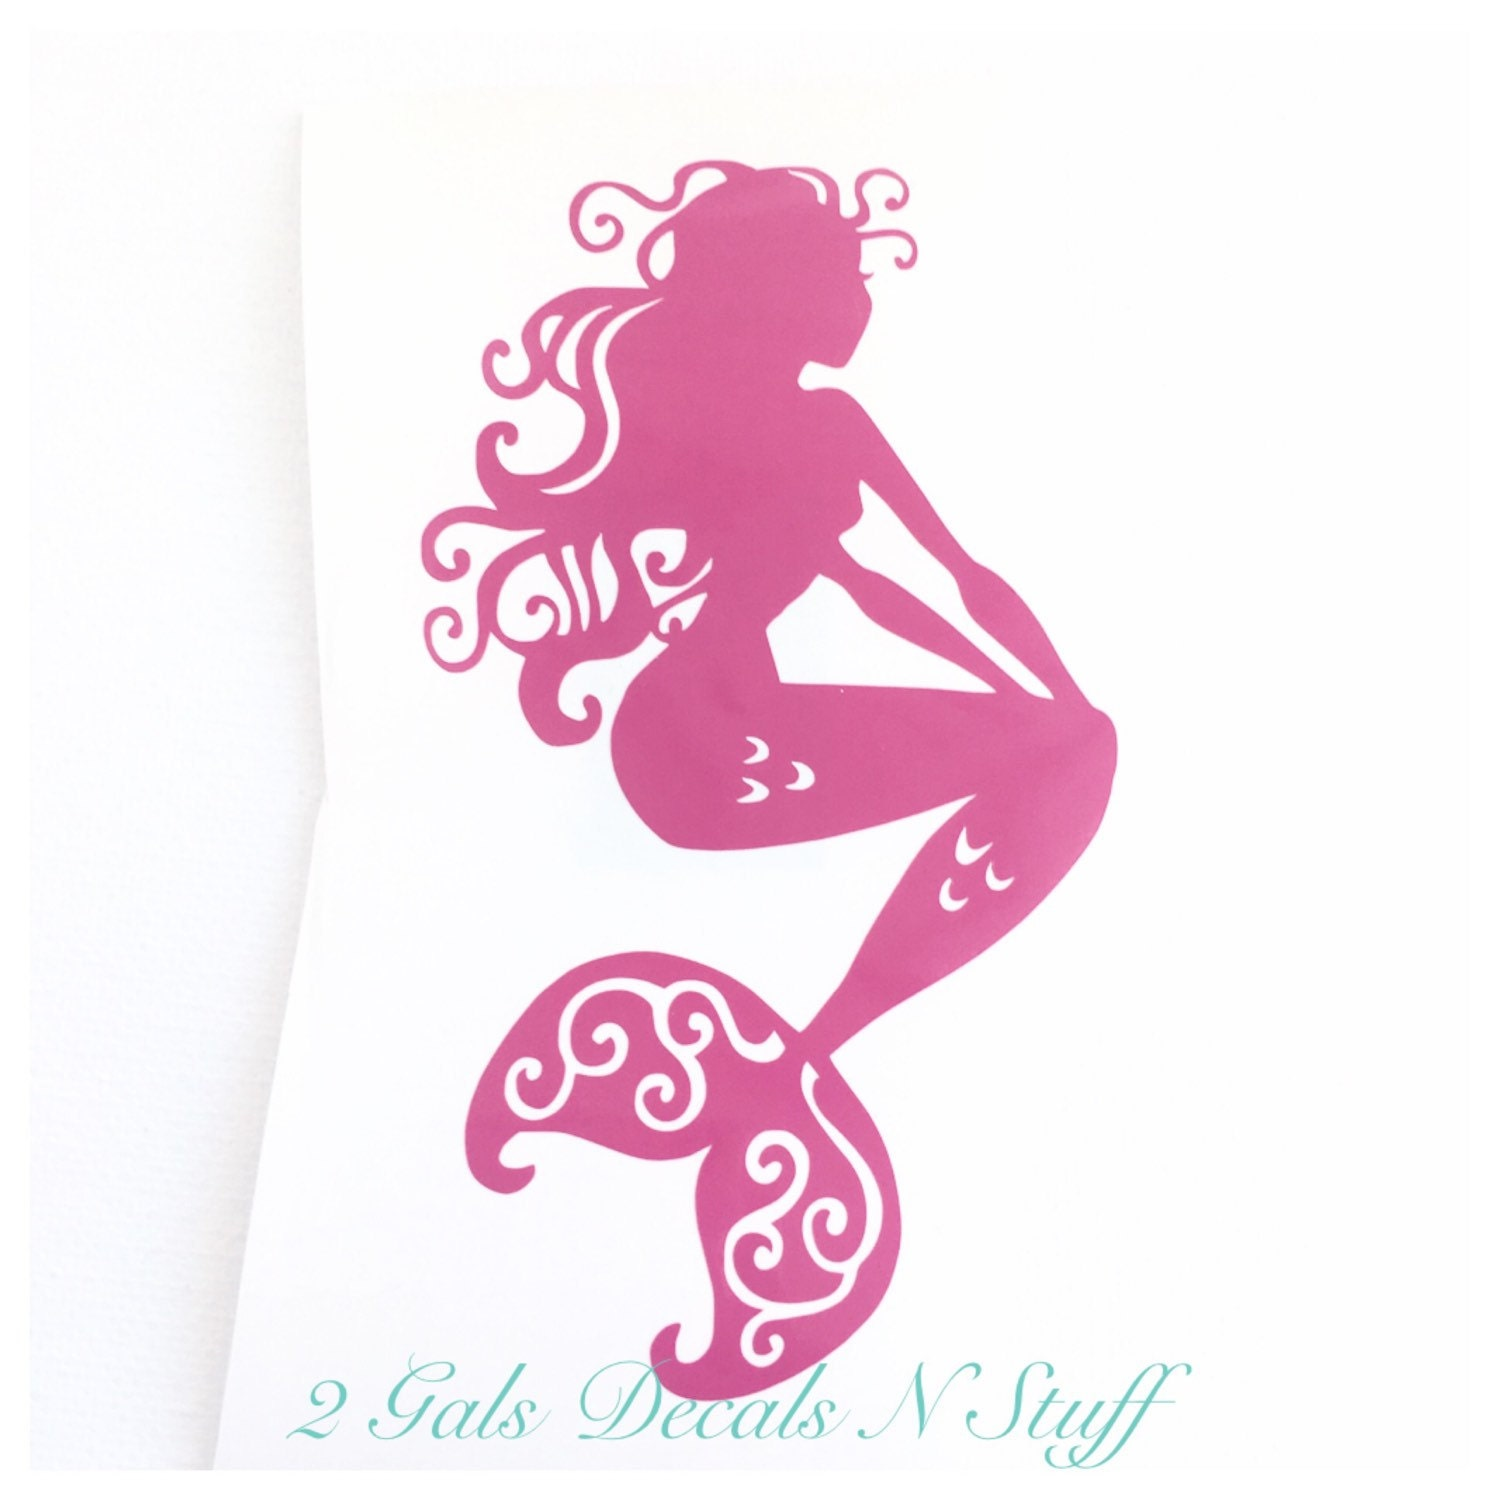 Sitting Mermaid Car Decal Mermaid Car Decal Mermaid - Mermaid custom vinyl decals for car